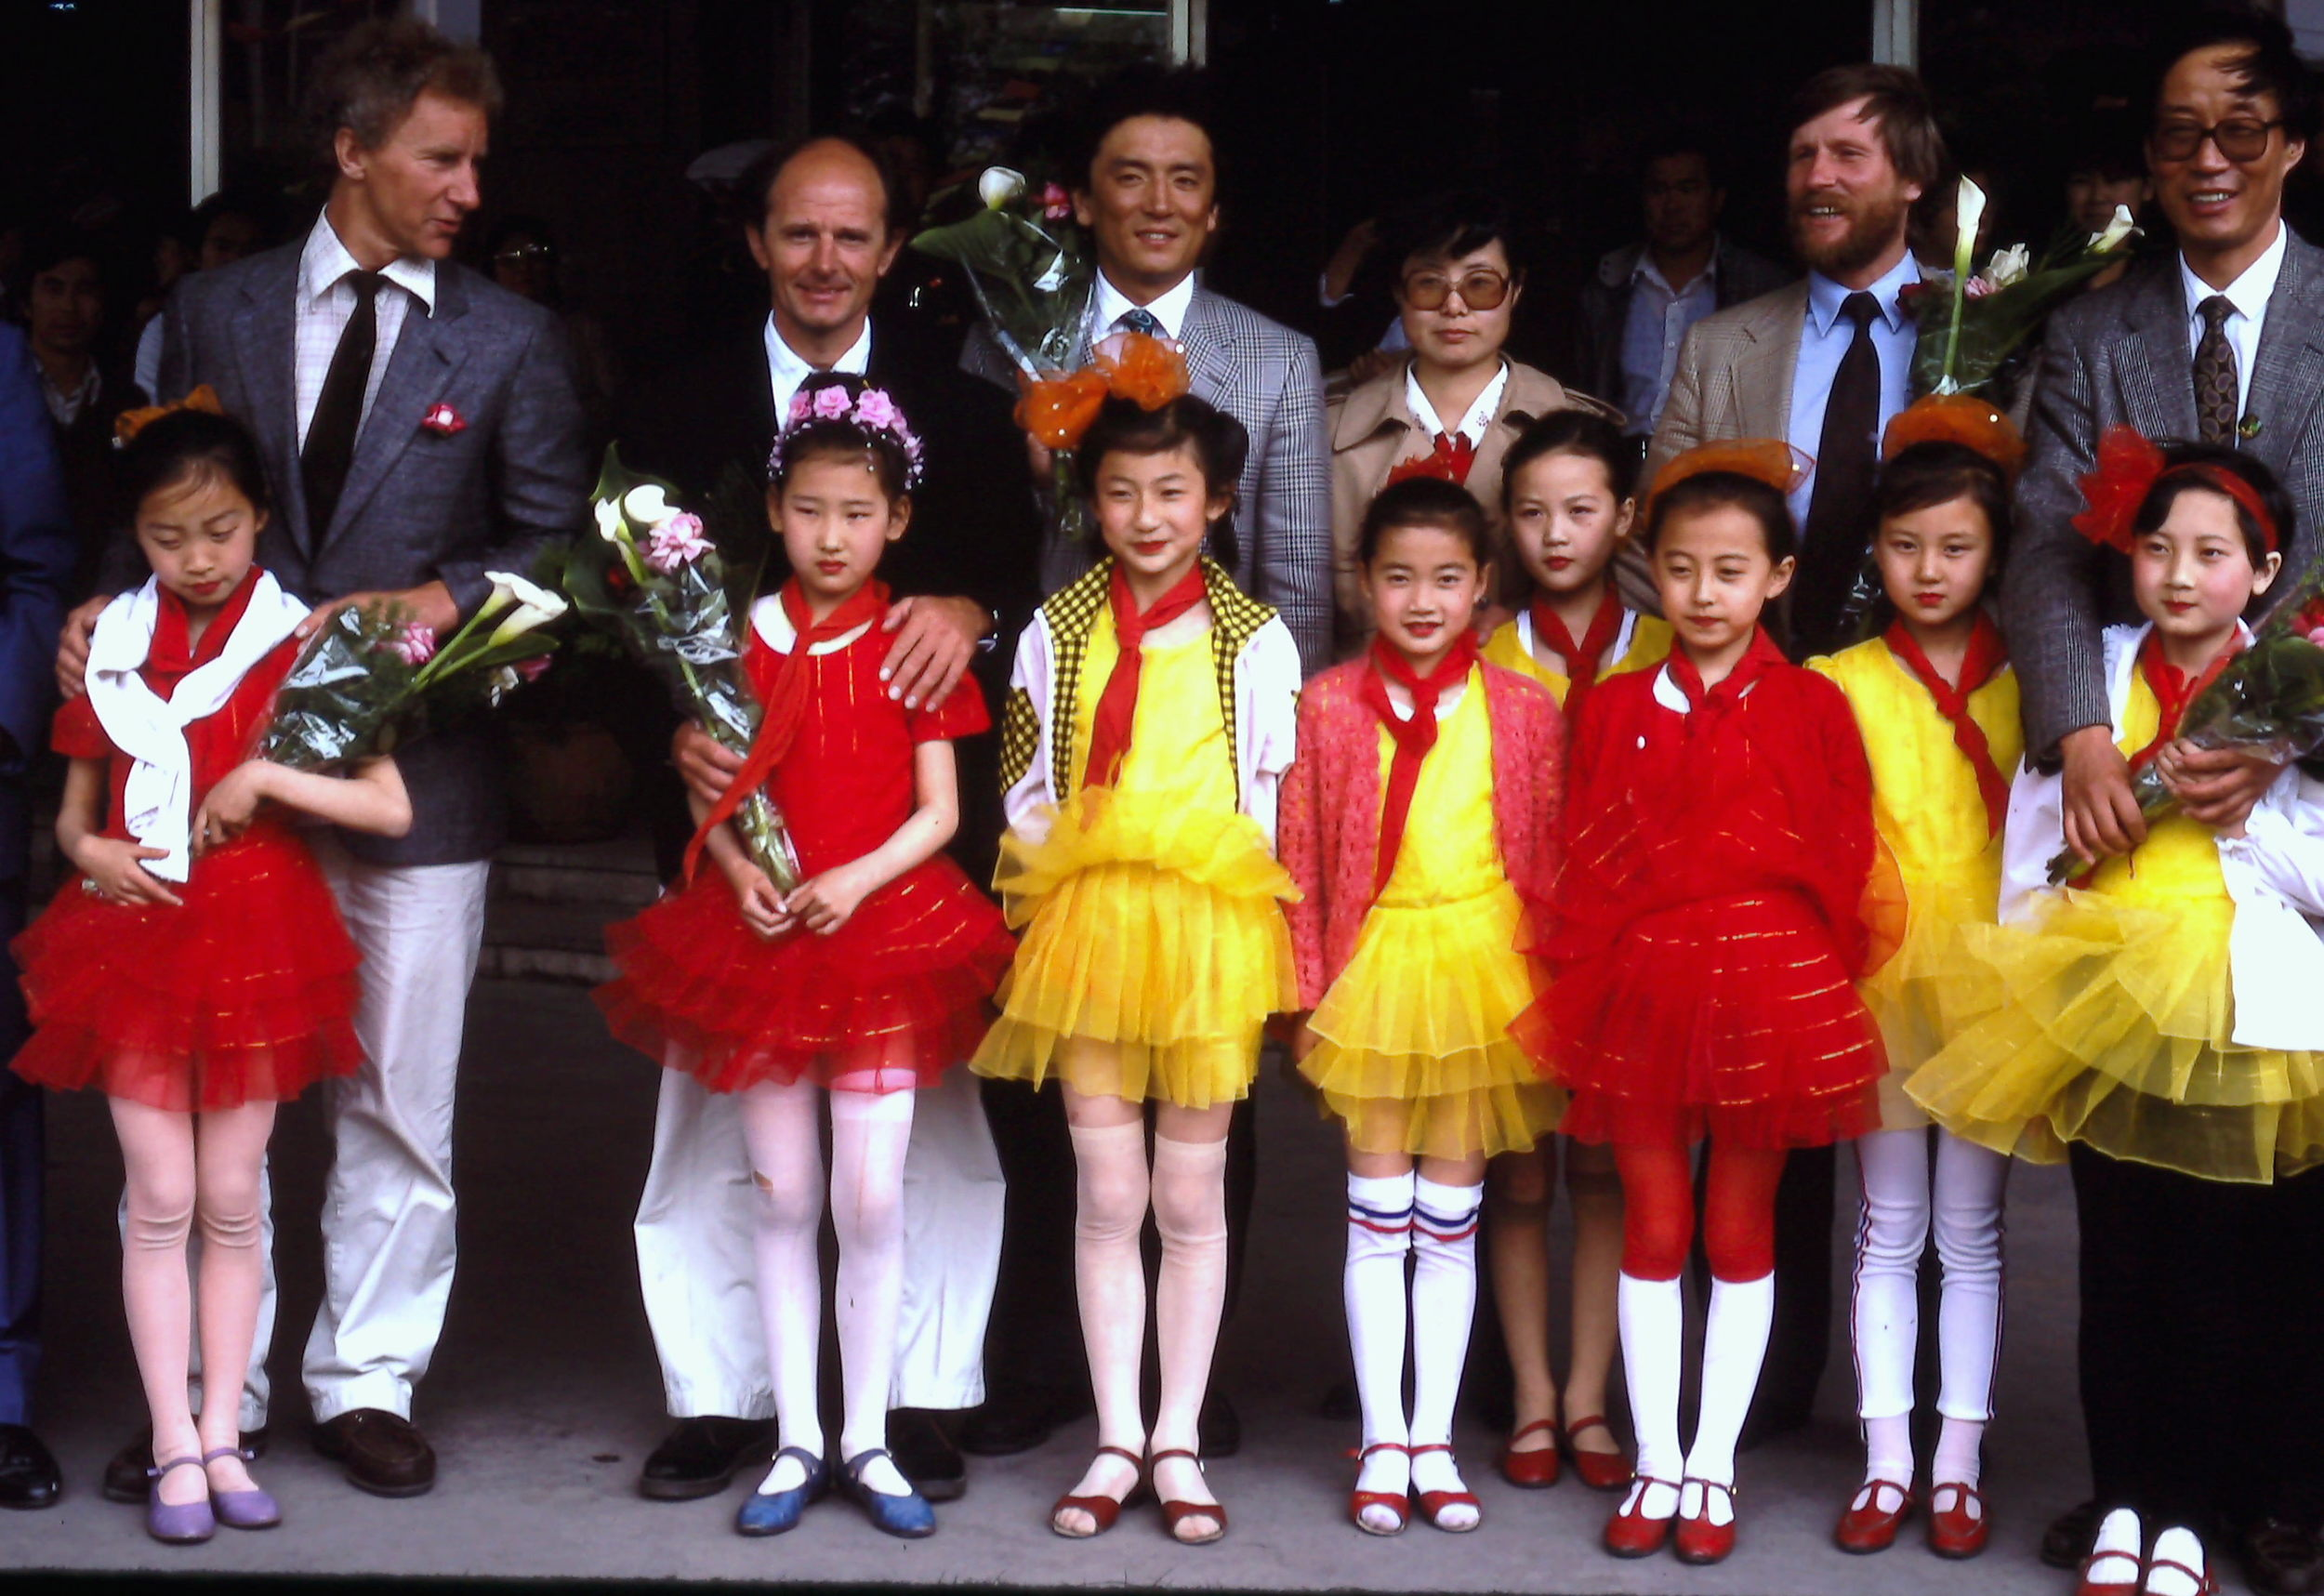 The 1990 International Trans-Antarctica Team is greeted at the Beijing airport,May 1990. Photo: Cynthia Mueller.